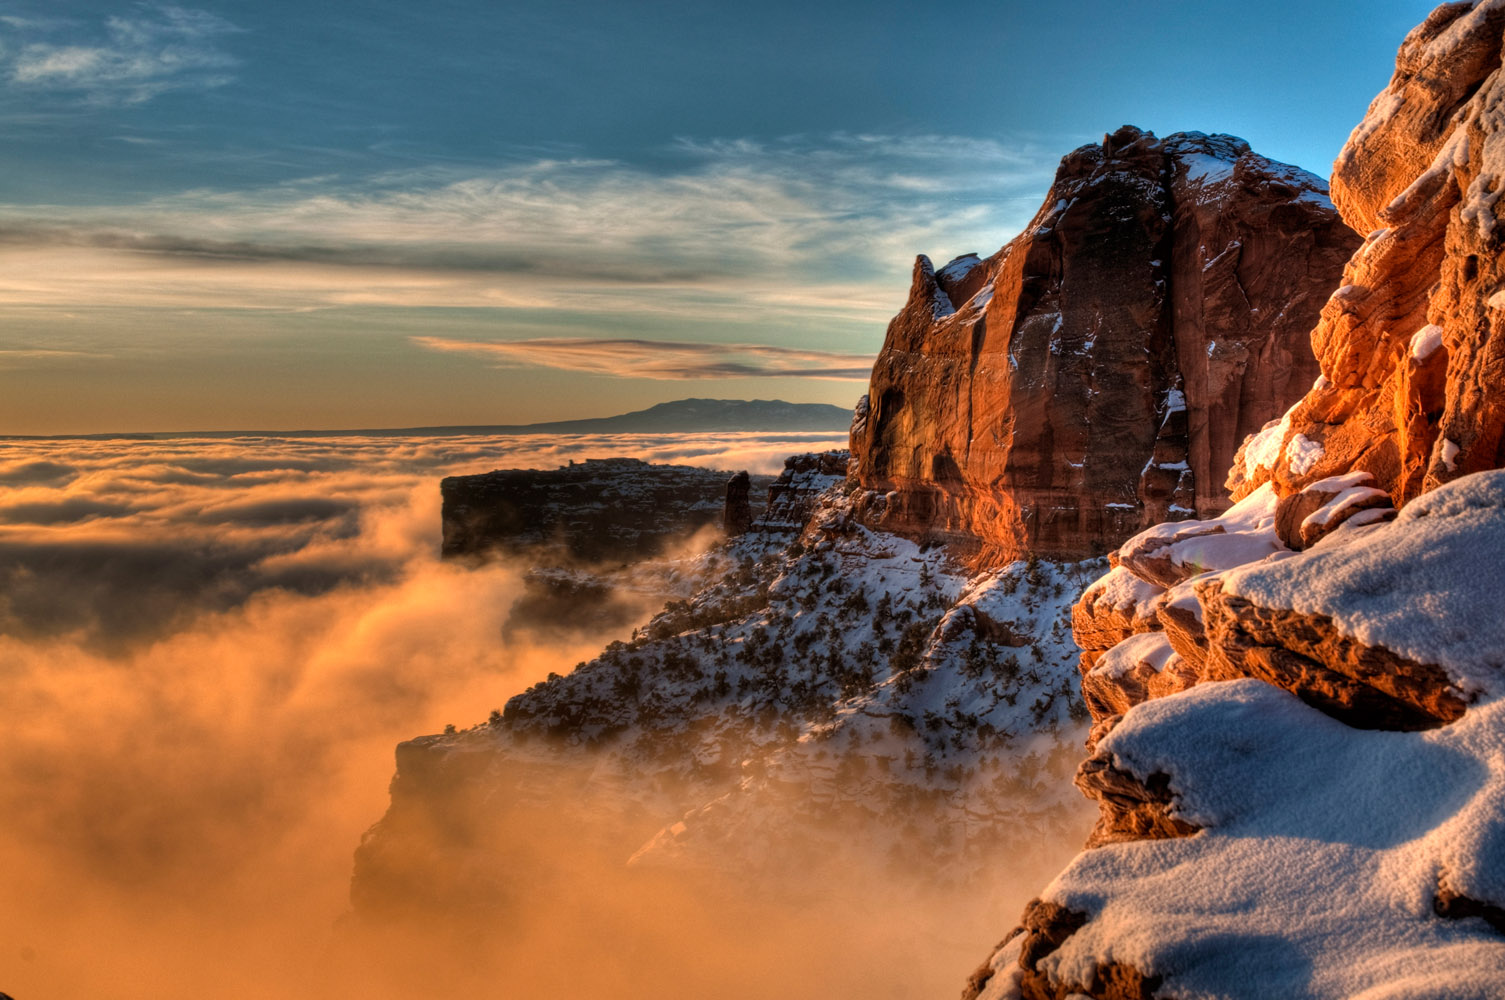 Sunrise over the fog, near Mesa Arch, Canyonlands National Park, Utah